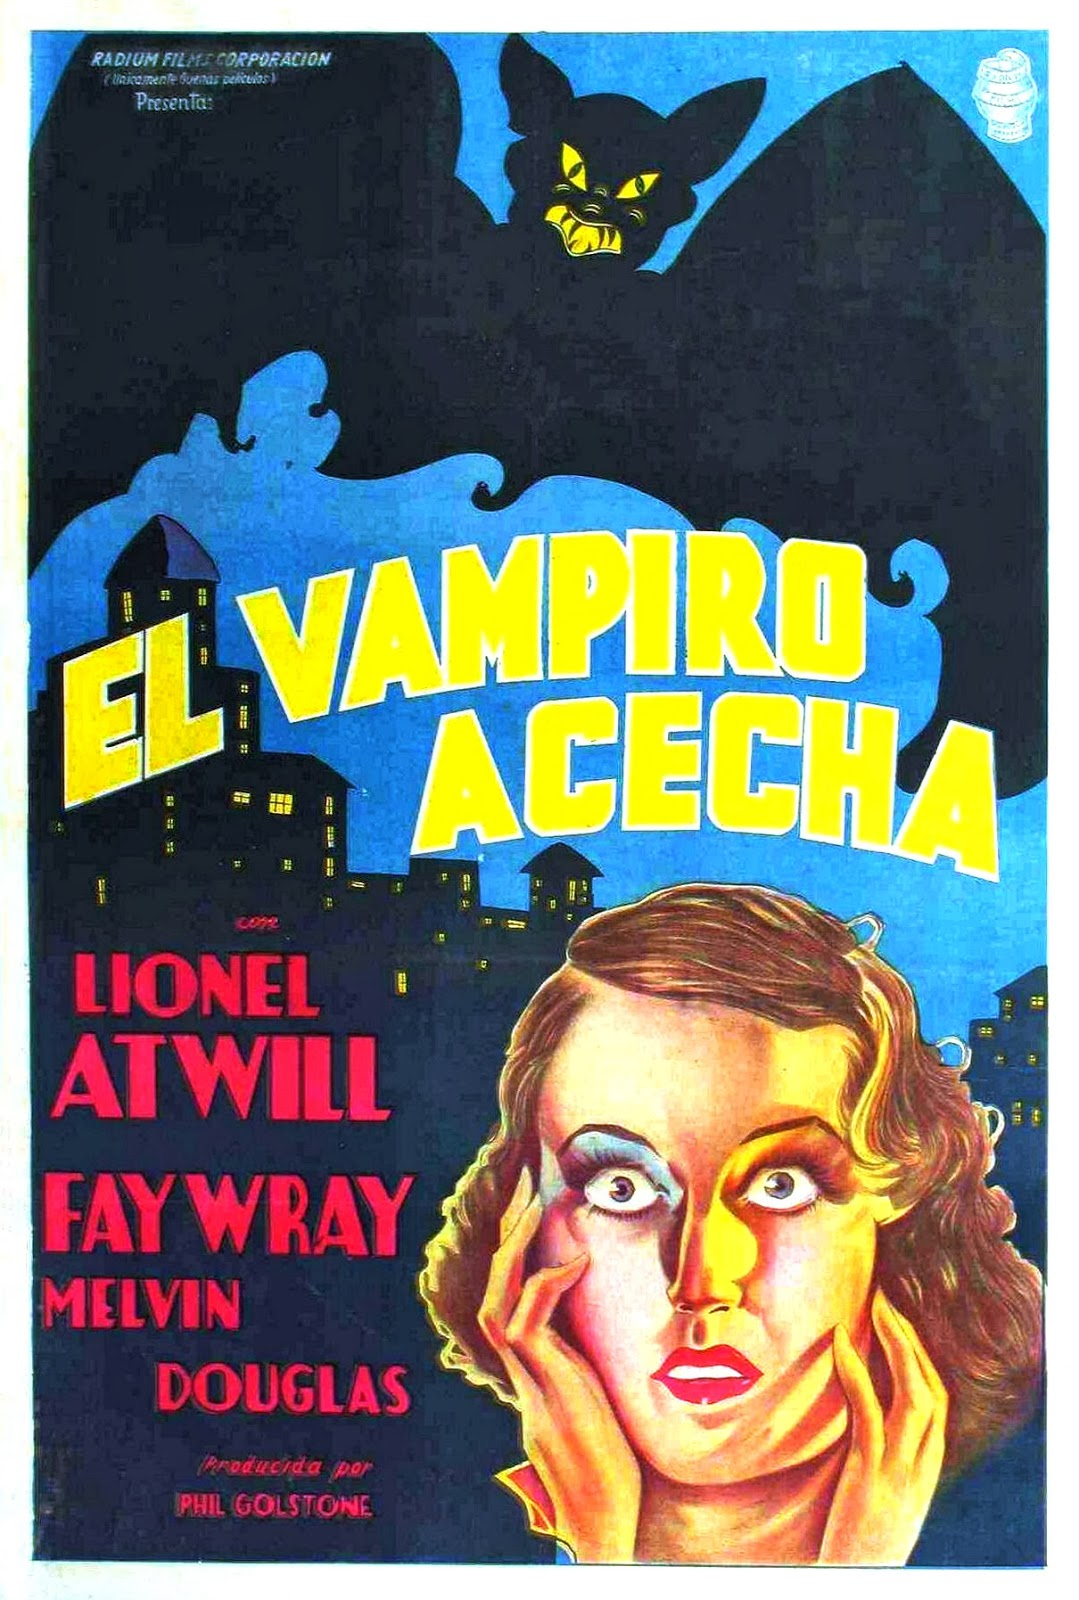 The Vampire Bat Spanish Film Poster